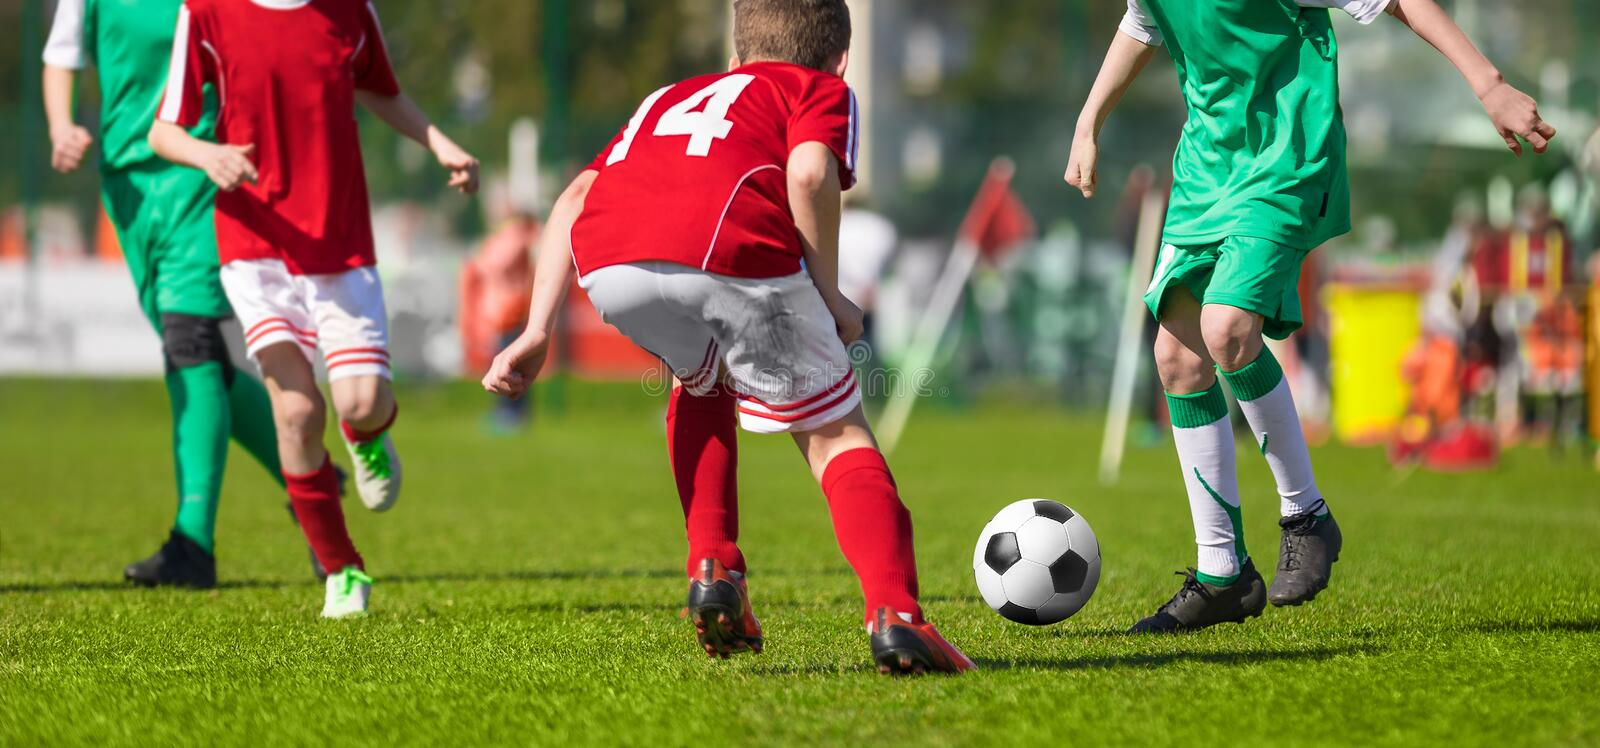 Football Soccer Match for Kids. Young Football Athletes. Coaching Youth Football stock photo